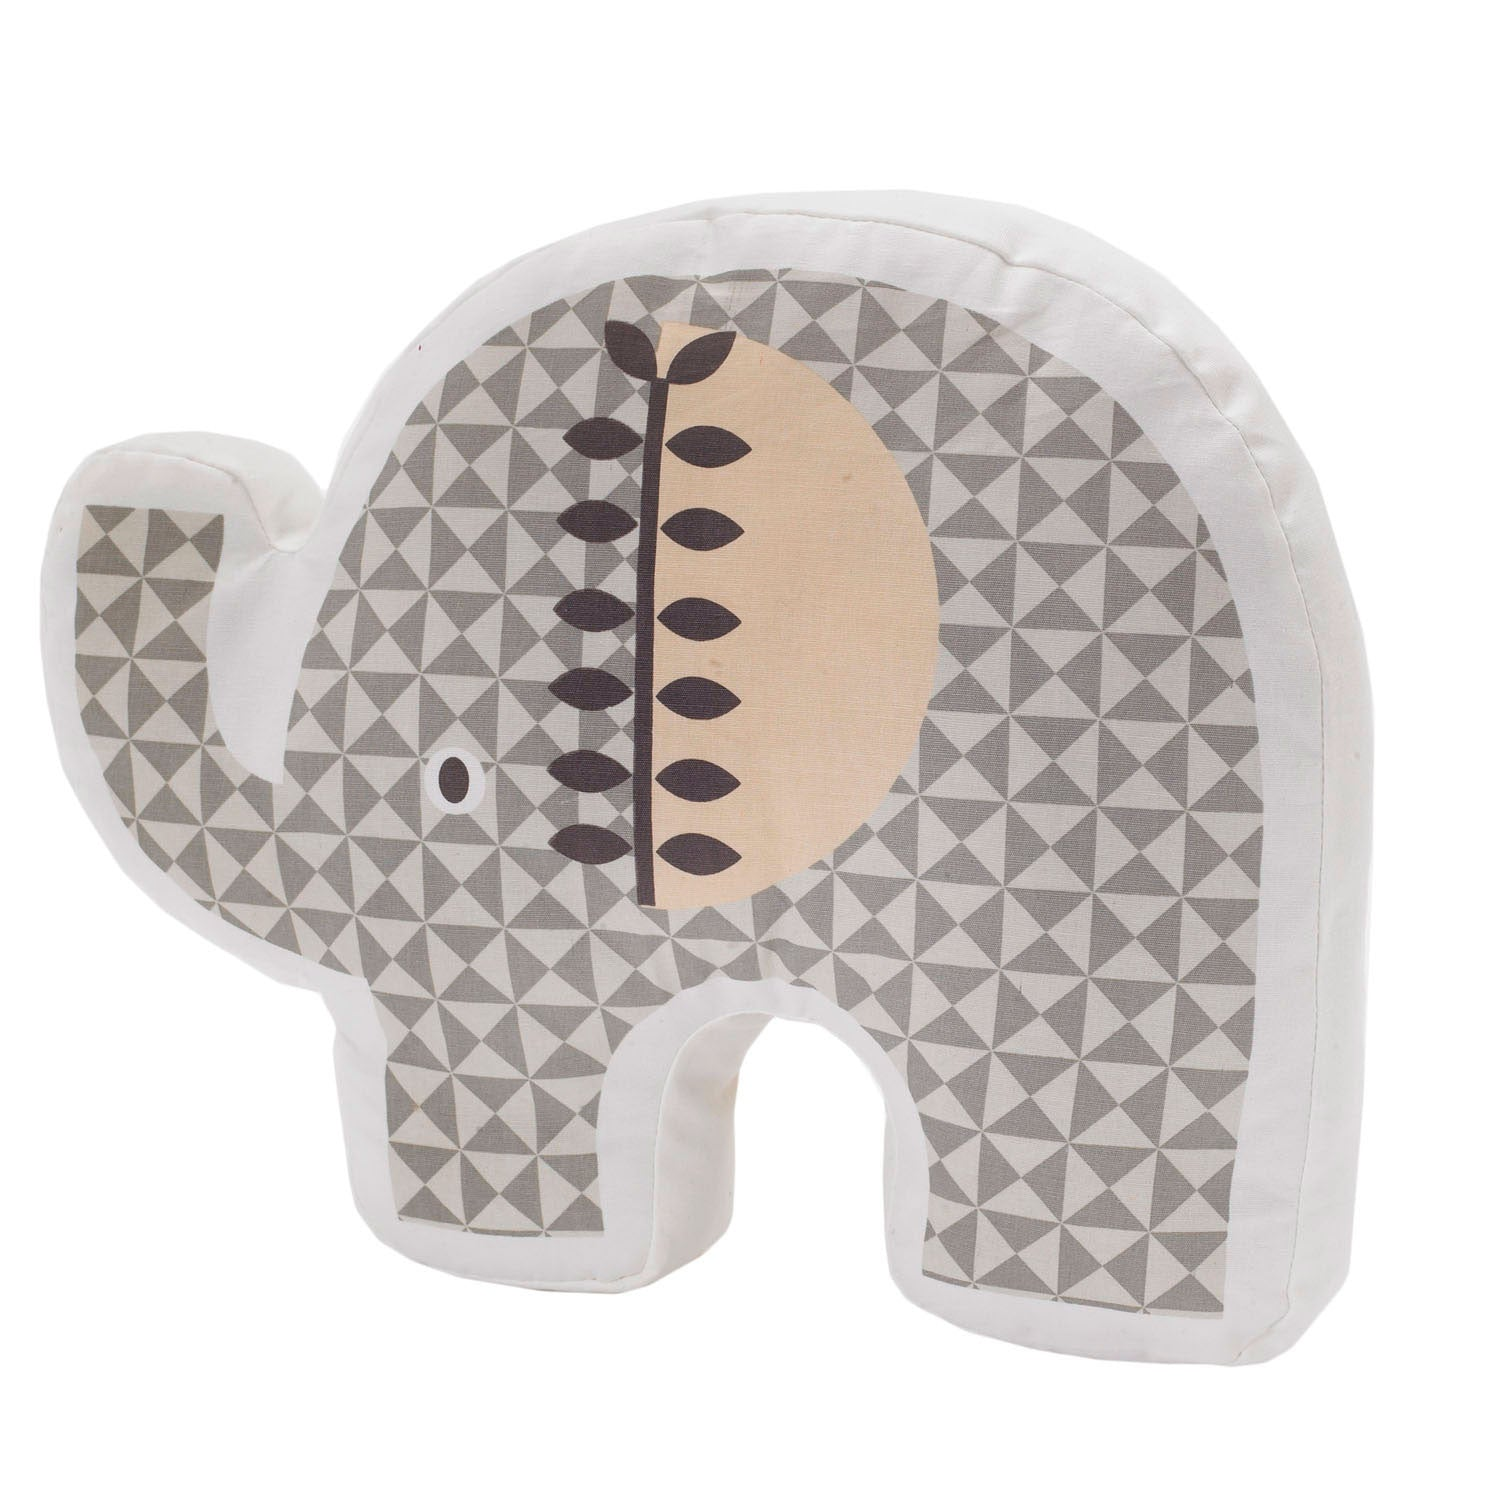 Pillow - Naturi Elephant - Living Textiles Co.